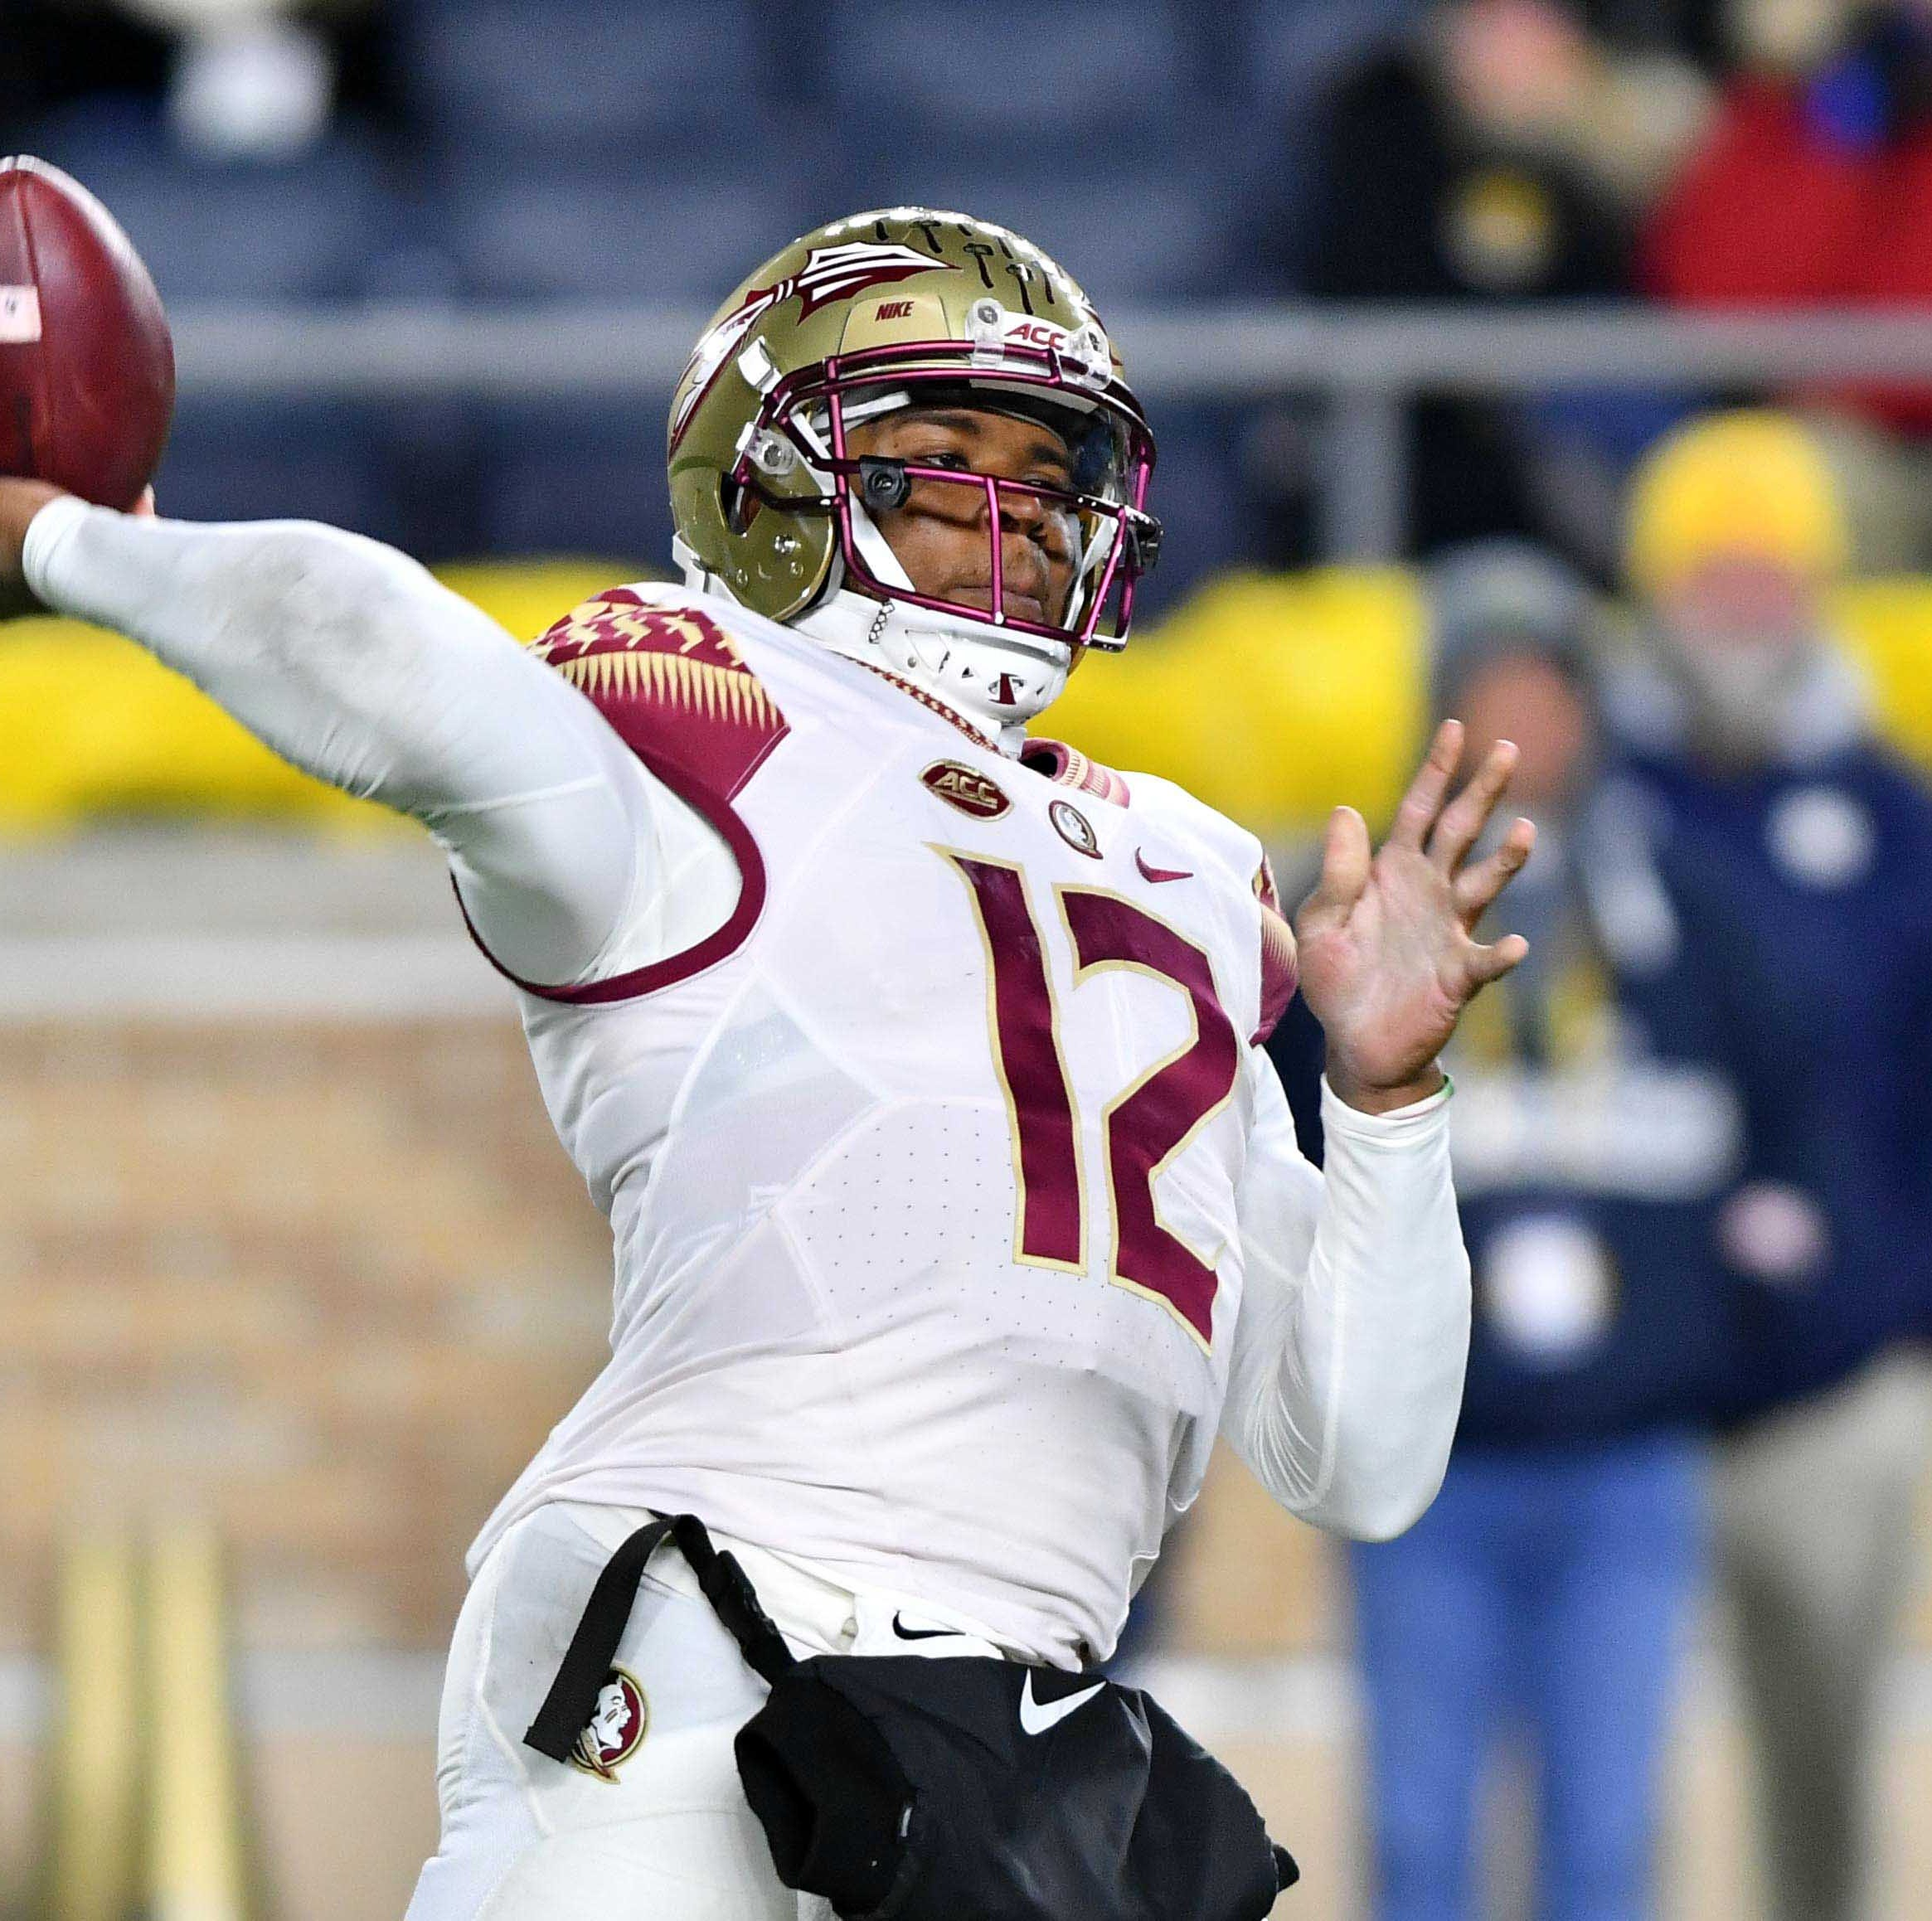 Willie Taggart's decision to start Deondre Francois was questionable | Wayne McGahee III